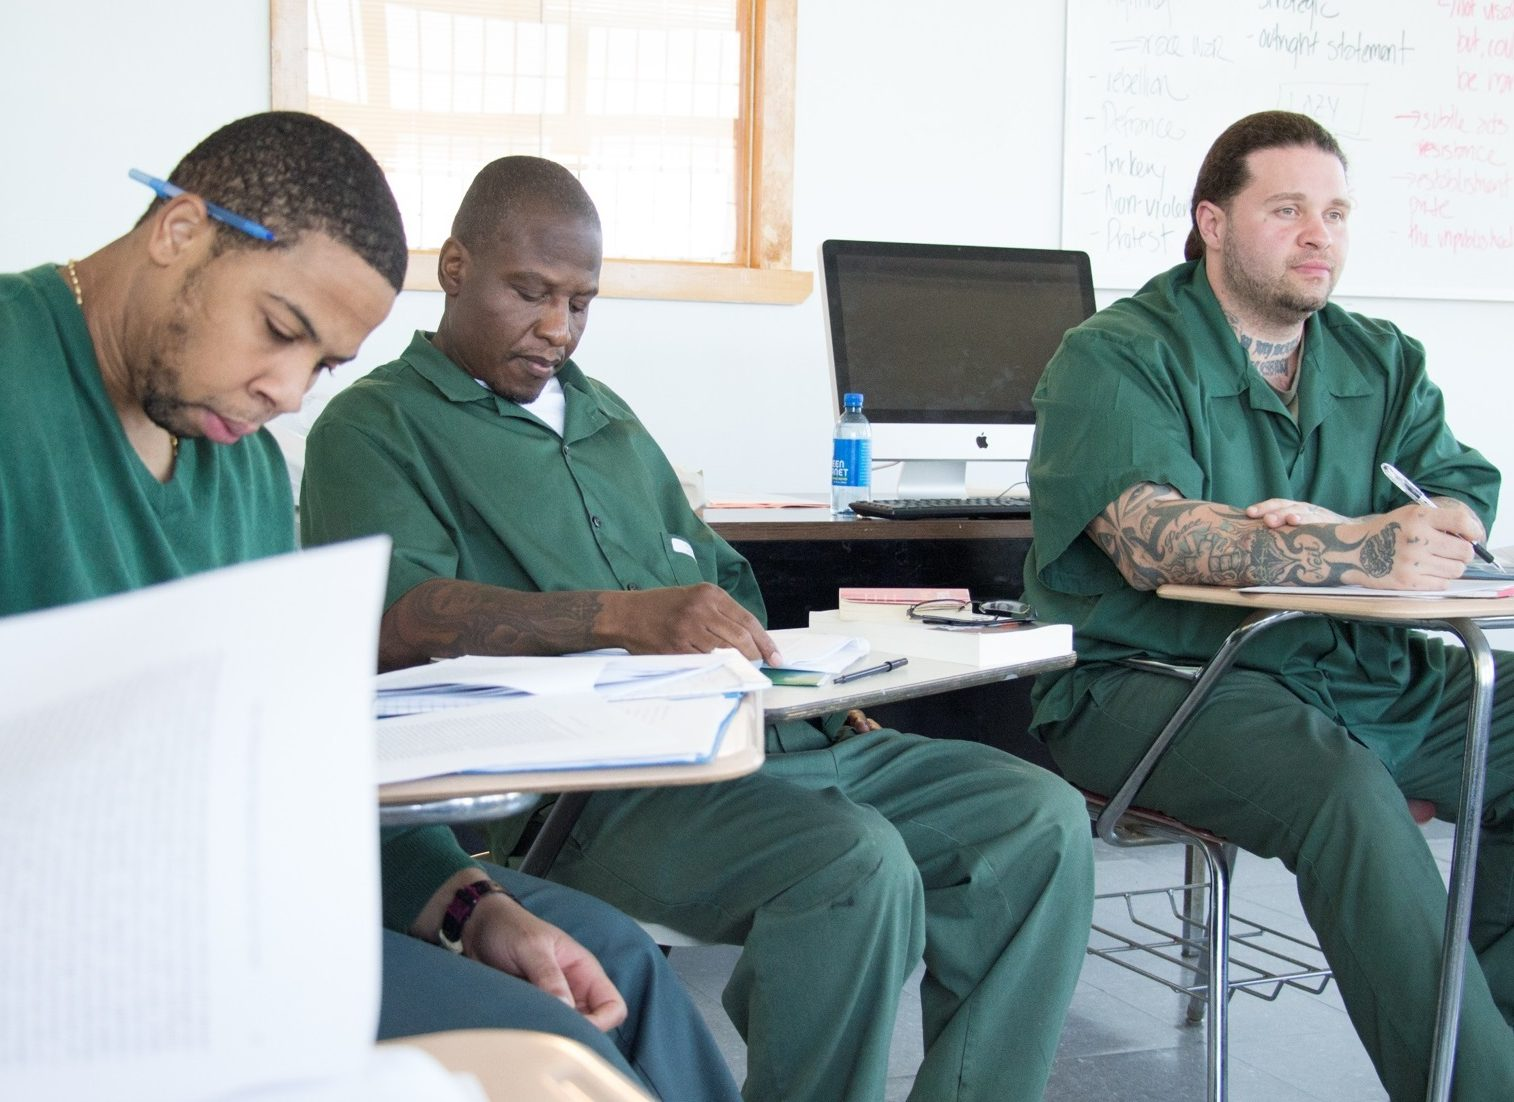 Students at Wallkill studying in class